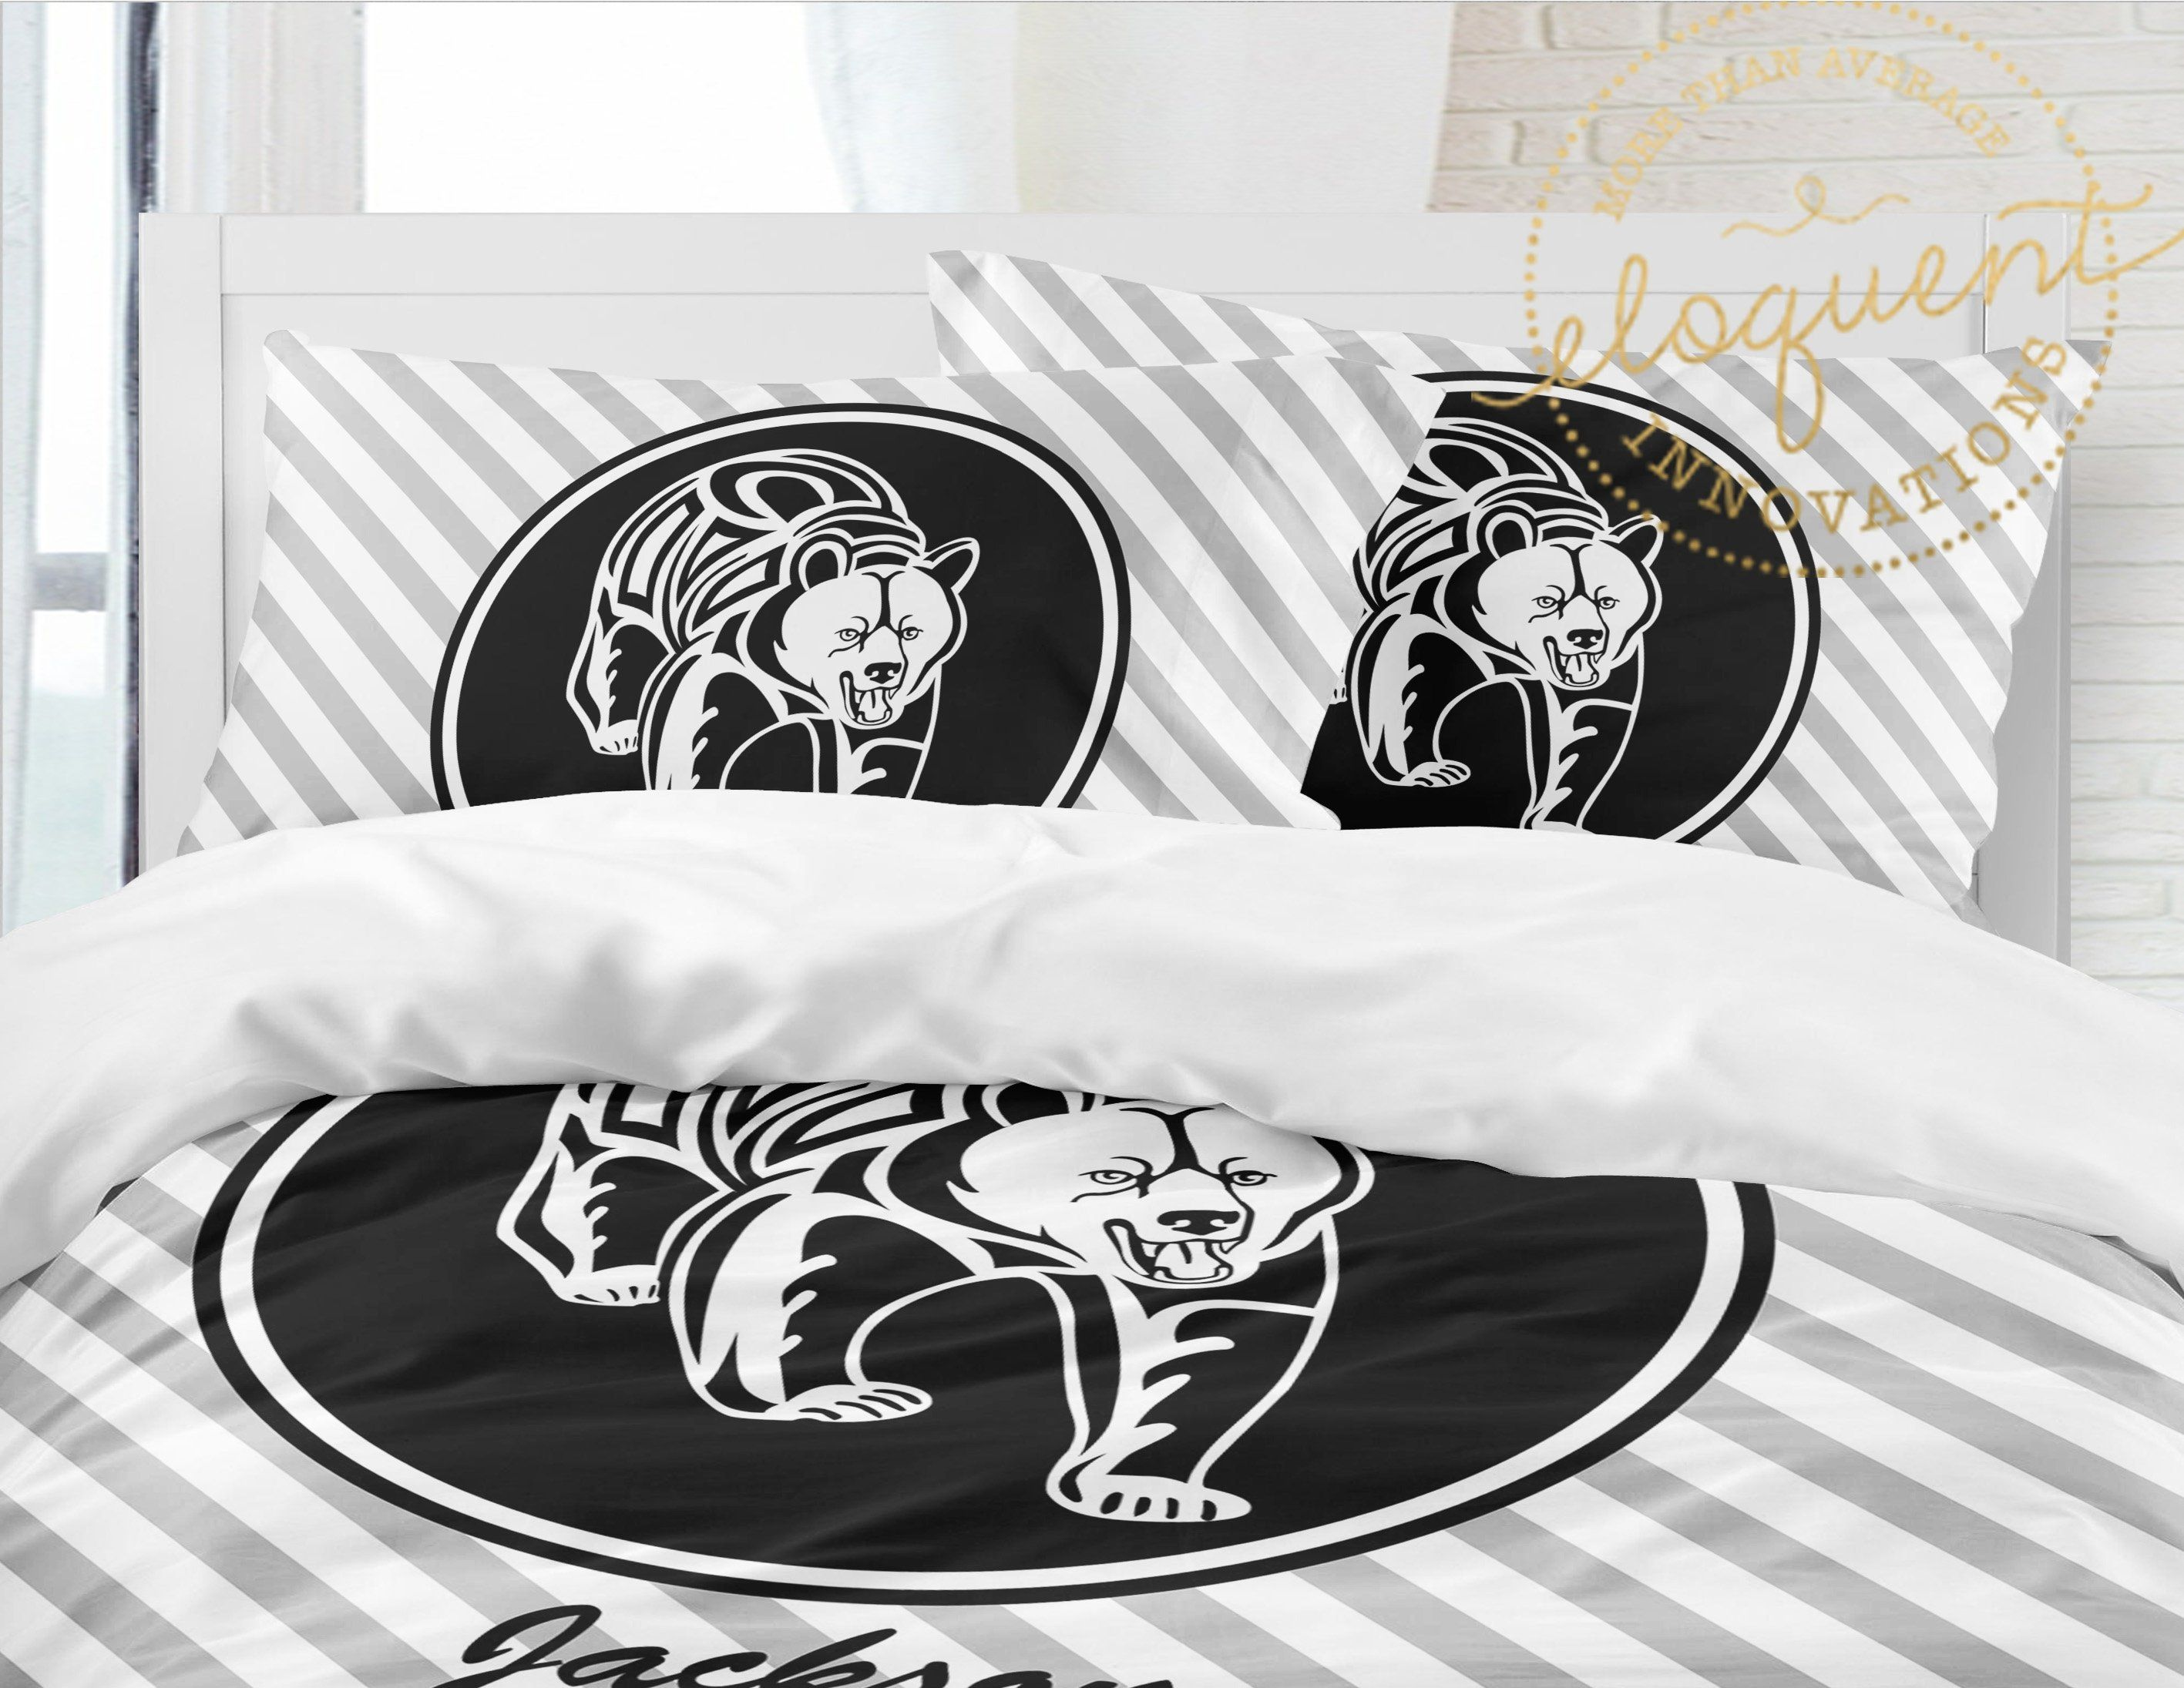 Bear Comforter Set Black Bear Bedding Theme For Boys Striped Personalized With Name Full Queen King And Tw Black Duvet Cover Comforter Sets Duvet Covers